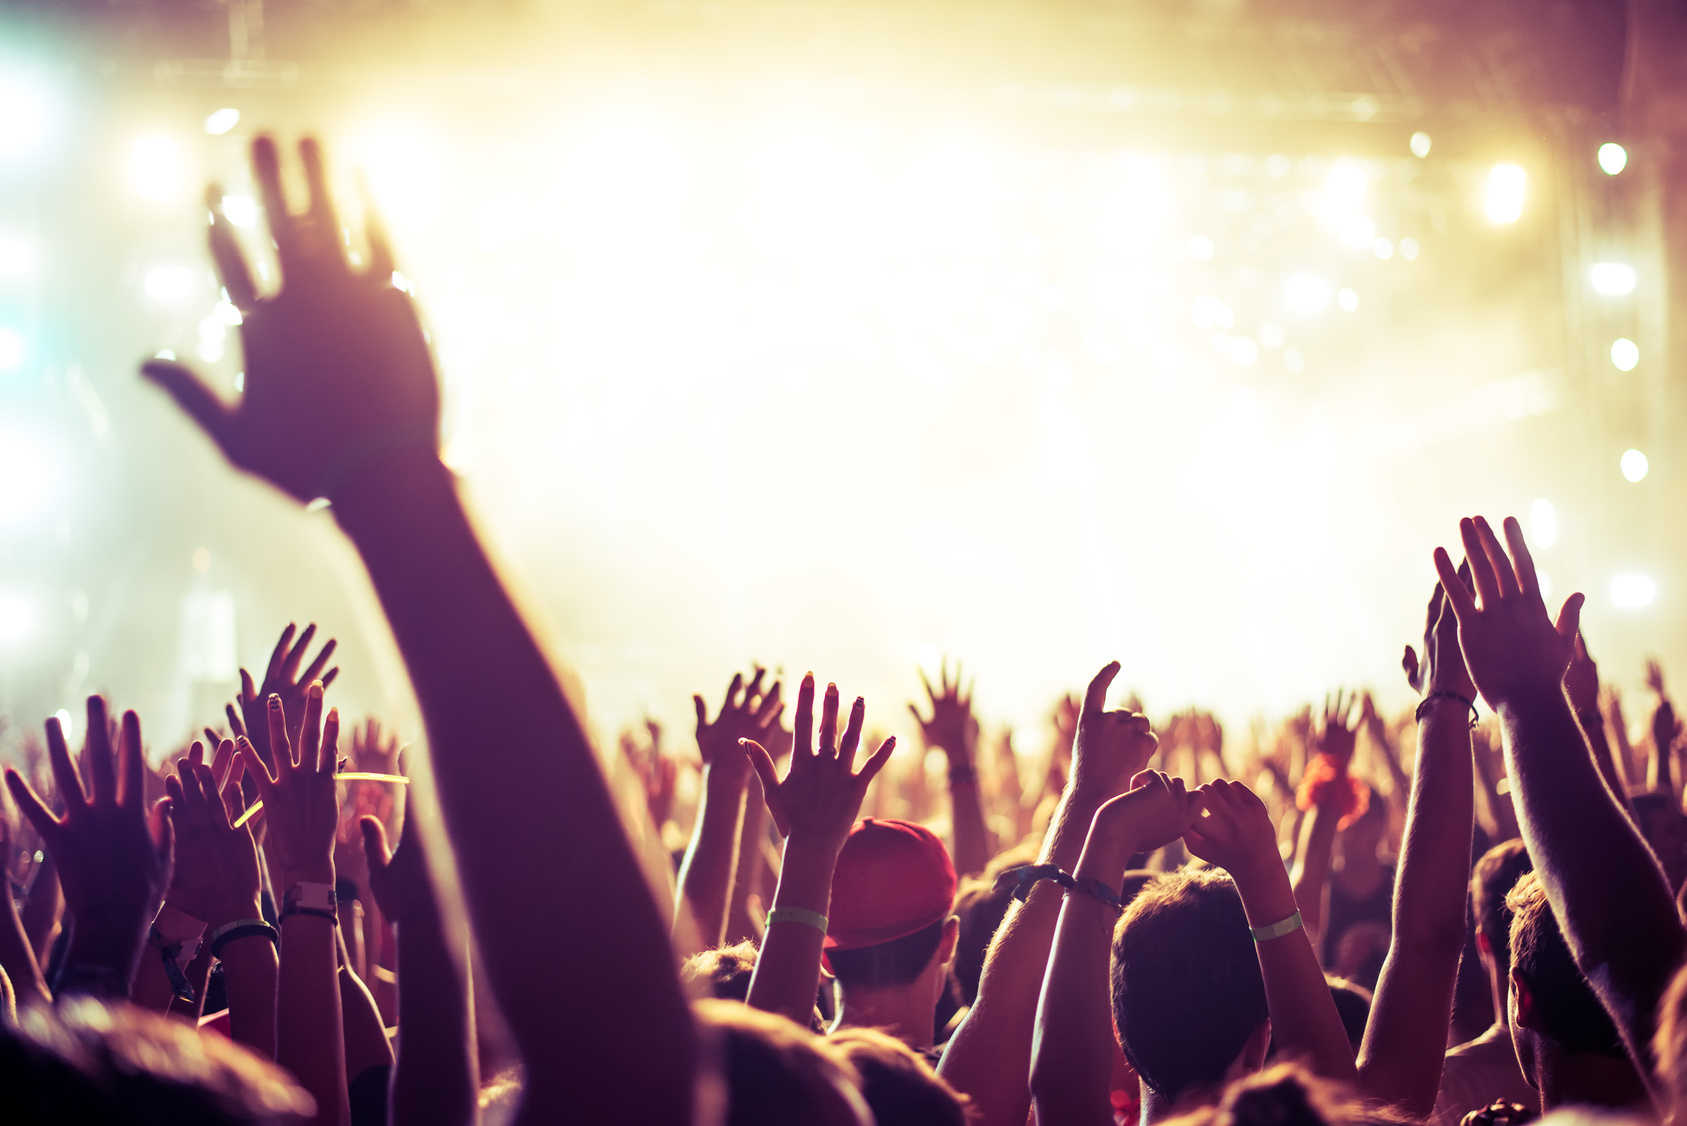 Buy a ticket to your favorite music concert in Japan! - Voyagin